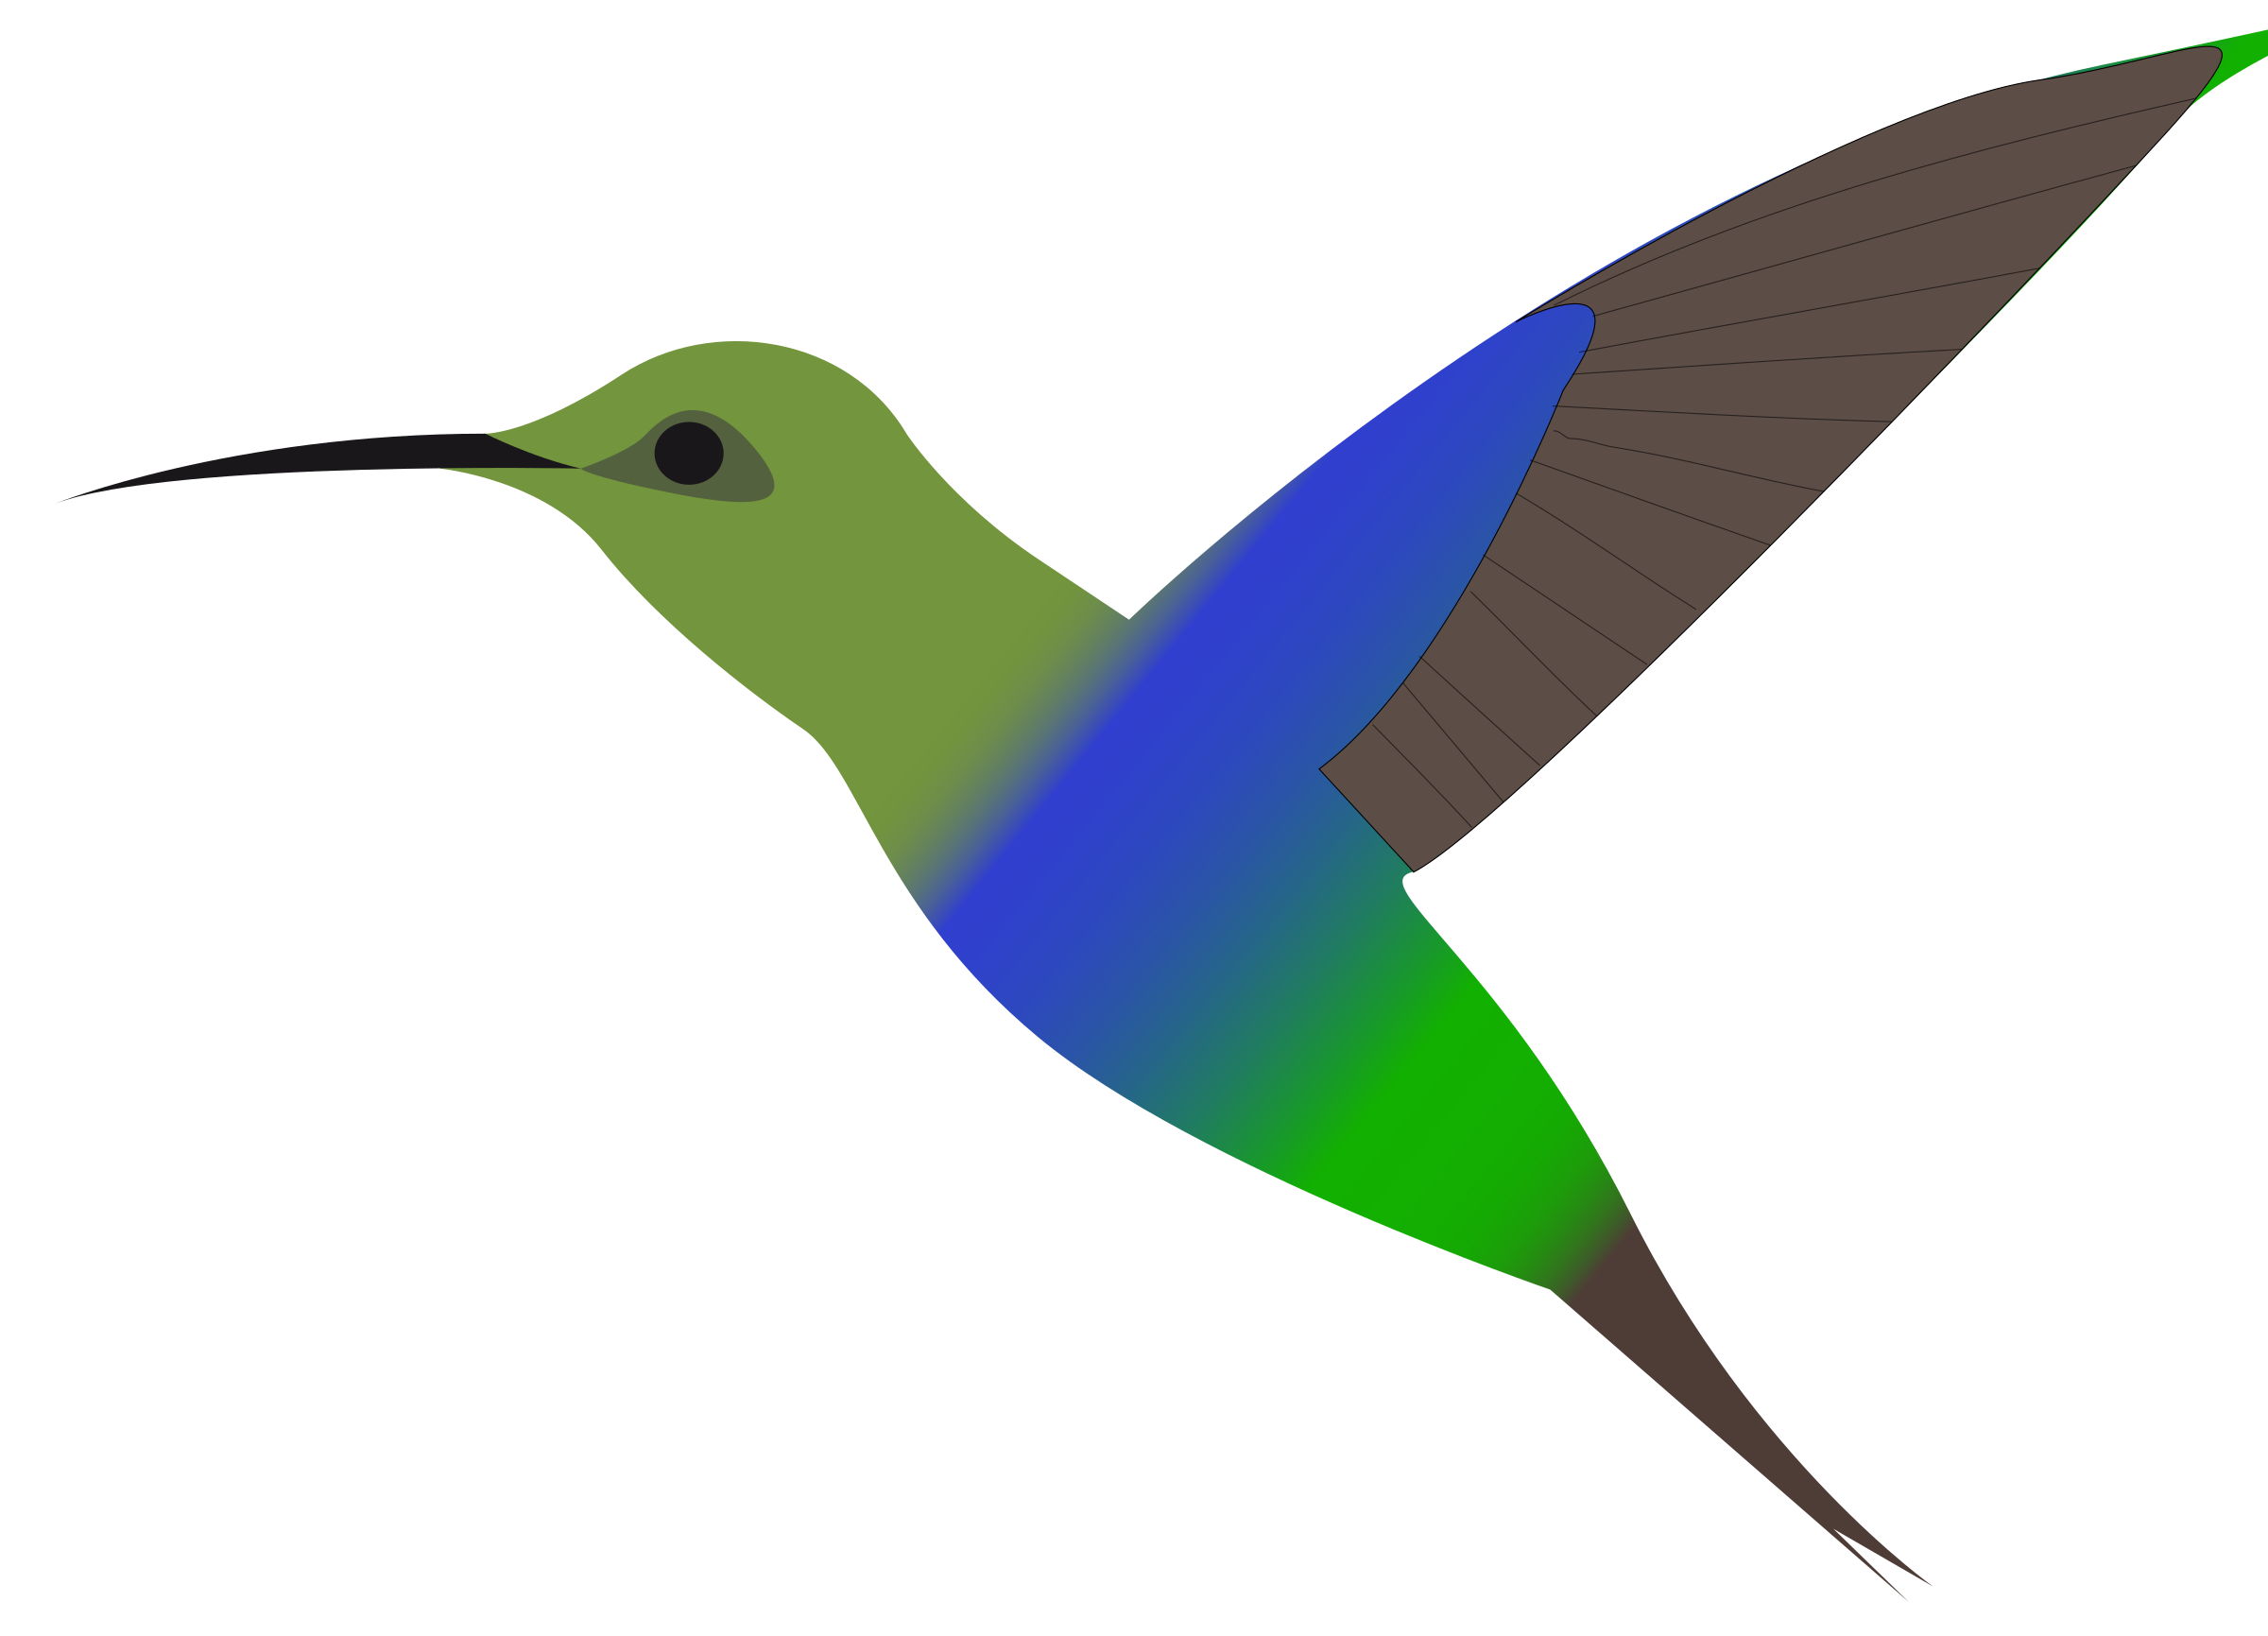 Silhouette at getdrawings com. Hummingbird clipart svg free